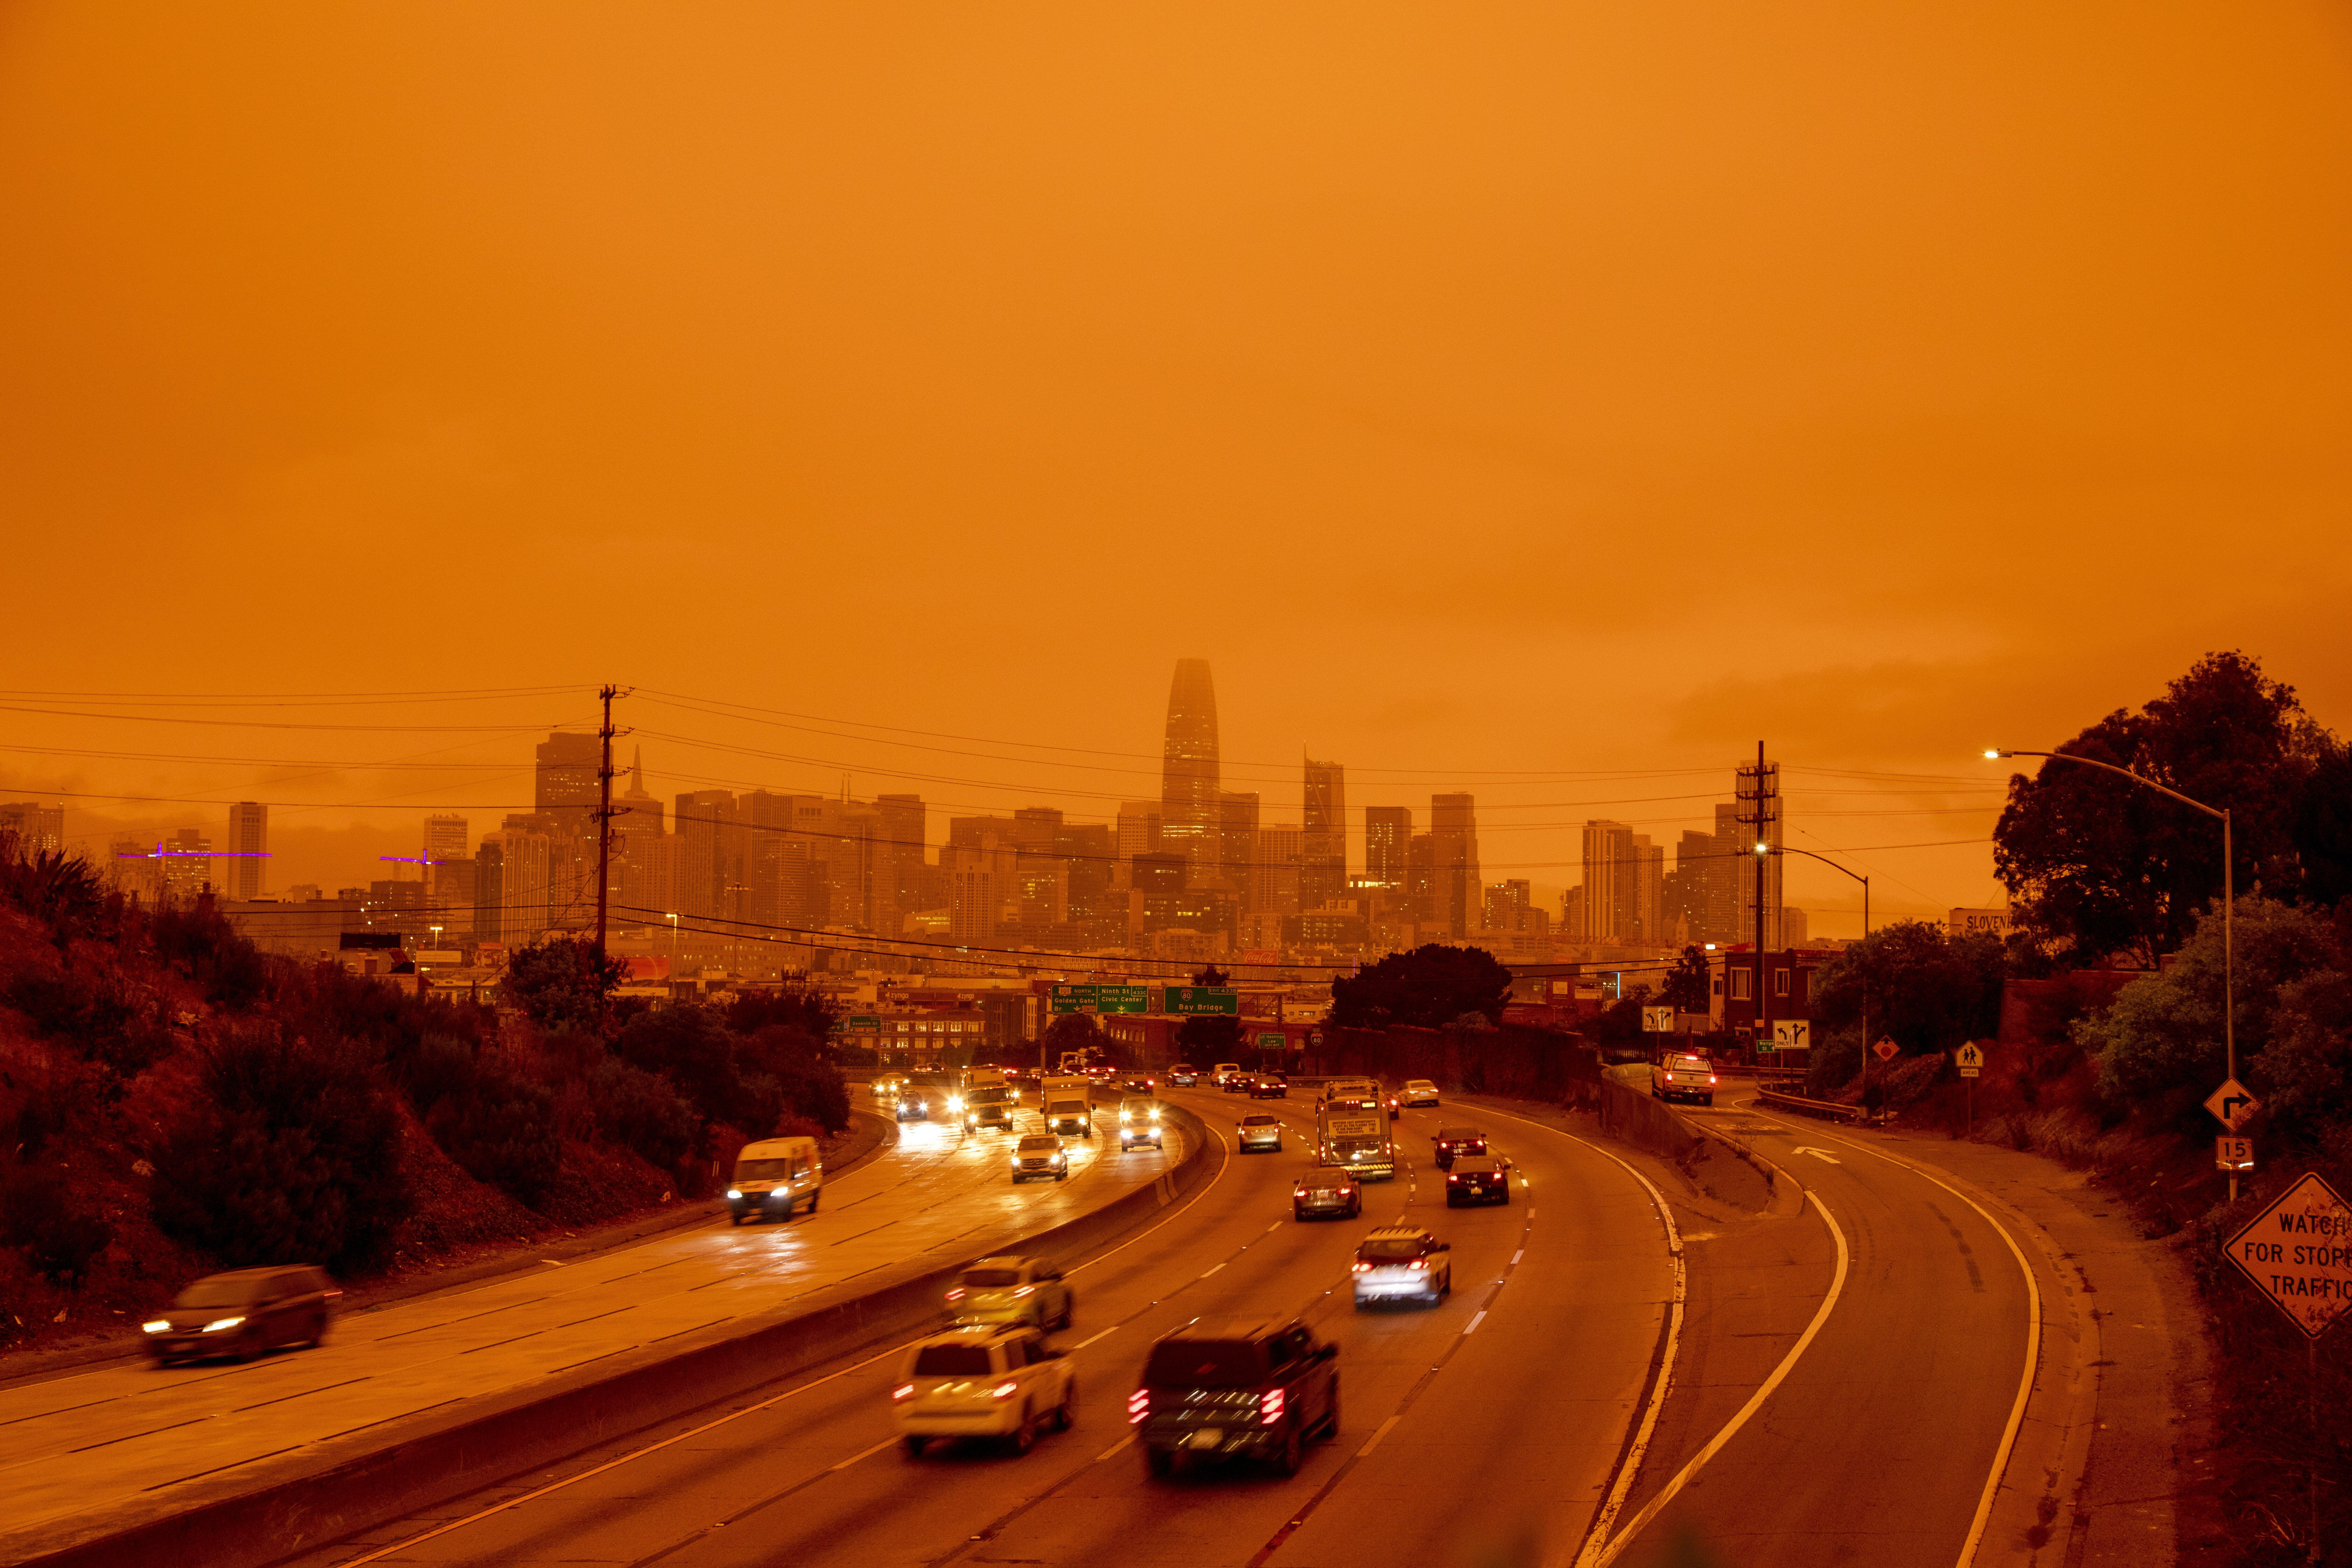 A layer of smoke generated by over two dozen wildfires burning in California created and eerie orange glow over much of the S